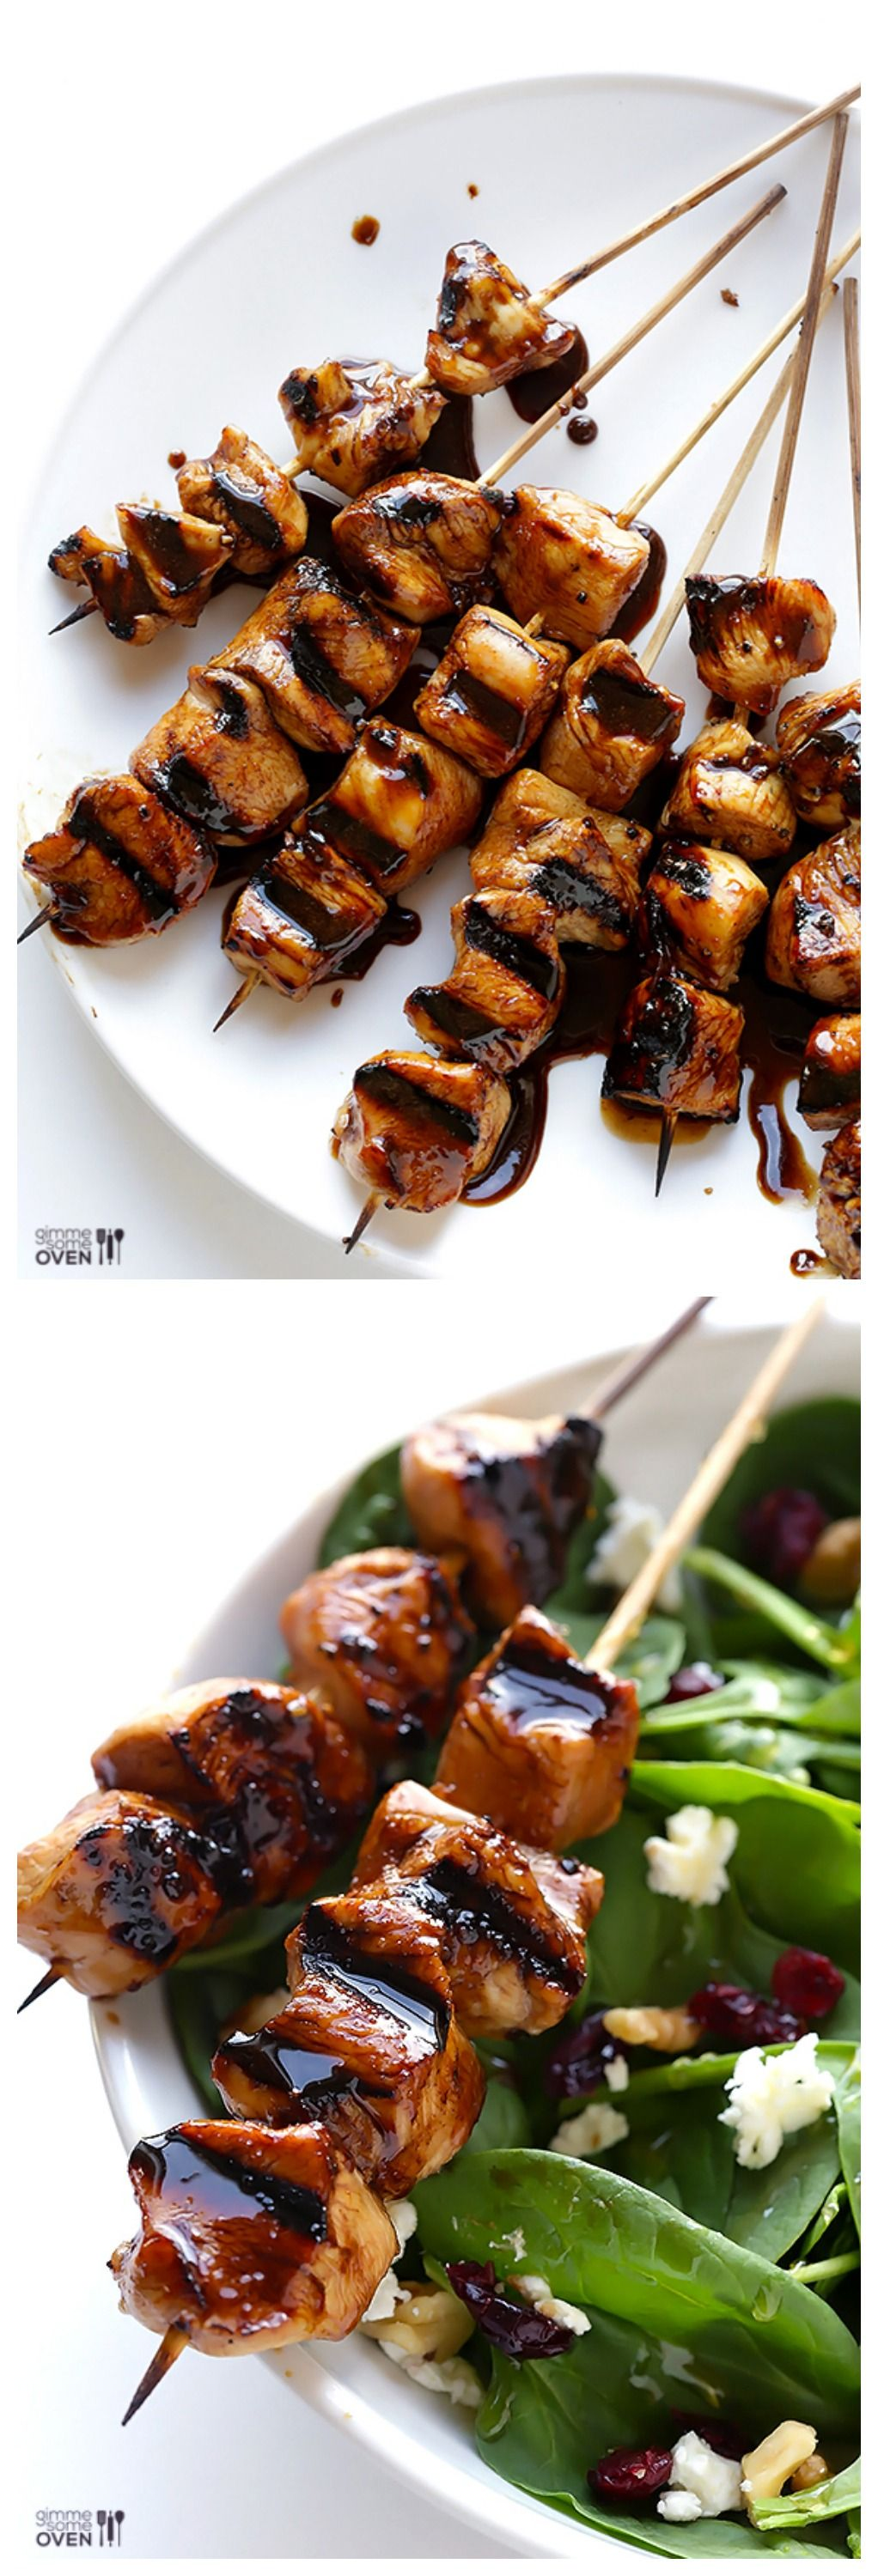 How long do i grill chicken kabobs - Easy Balsamic Chicken Skewers Big Giveaway